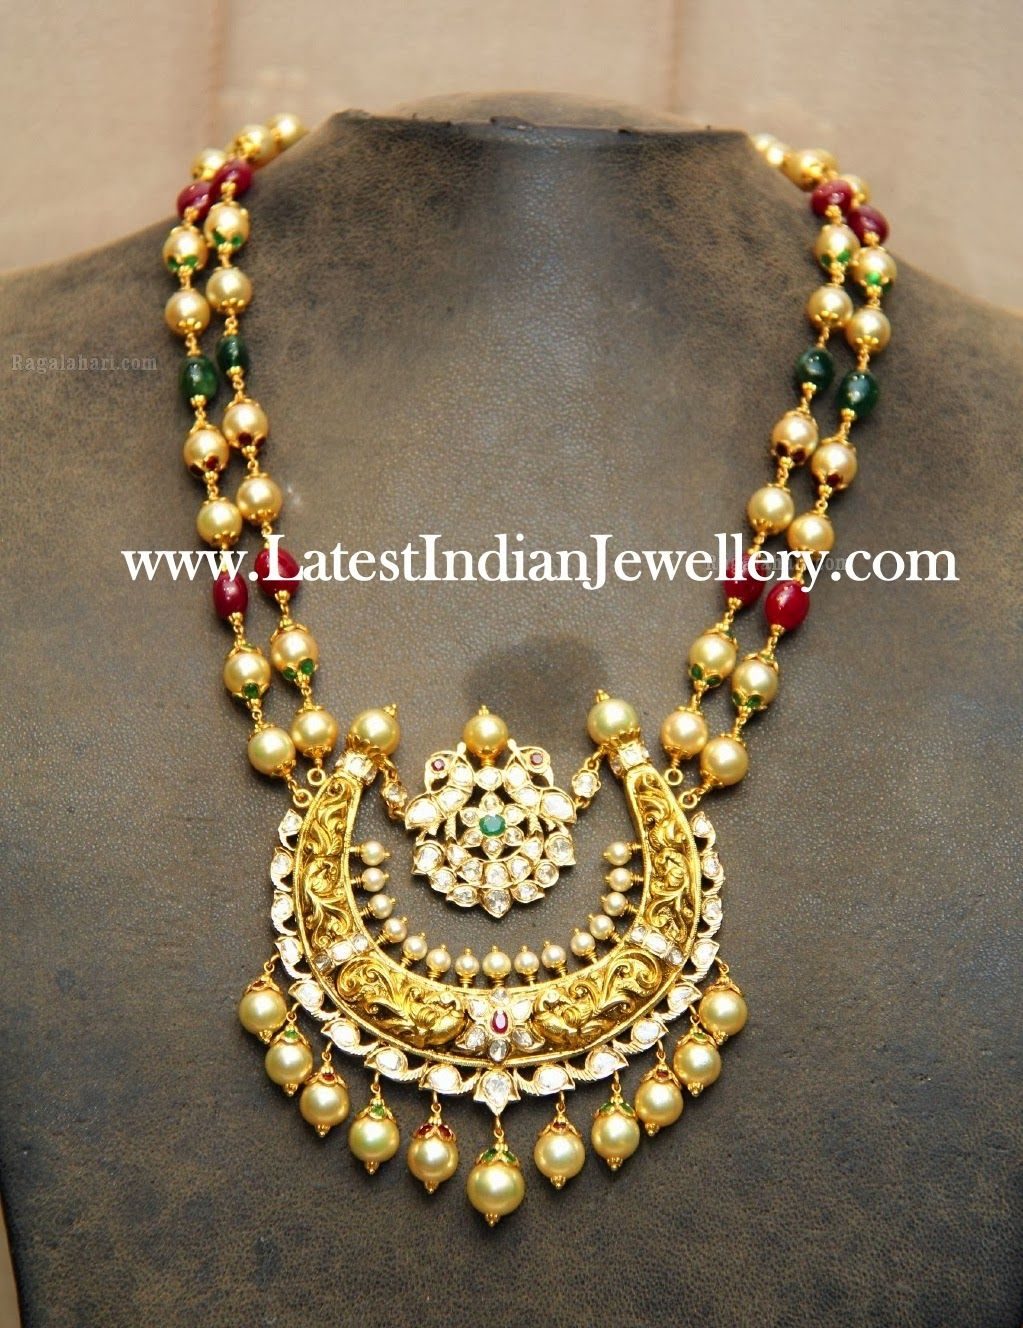 Exclusive fashionable beads neck piece from Hiya Jewellers ...